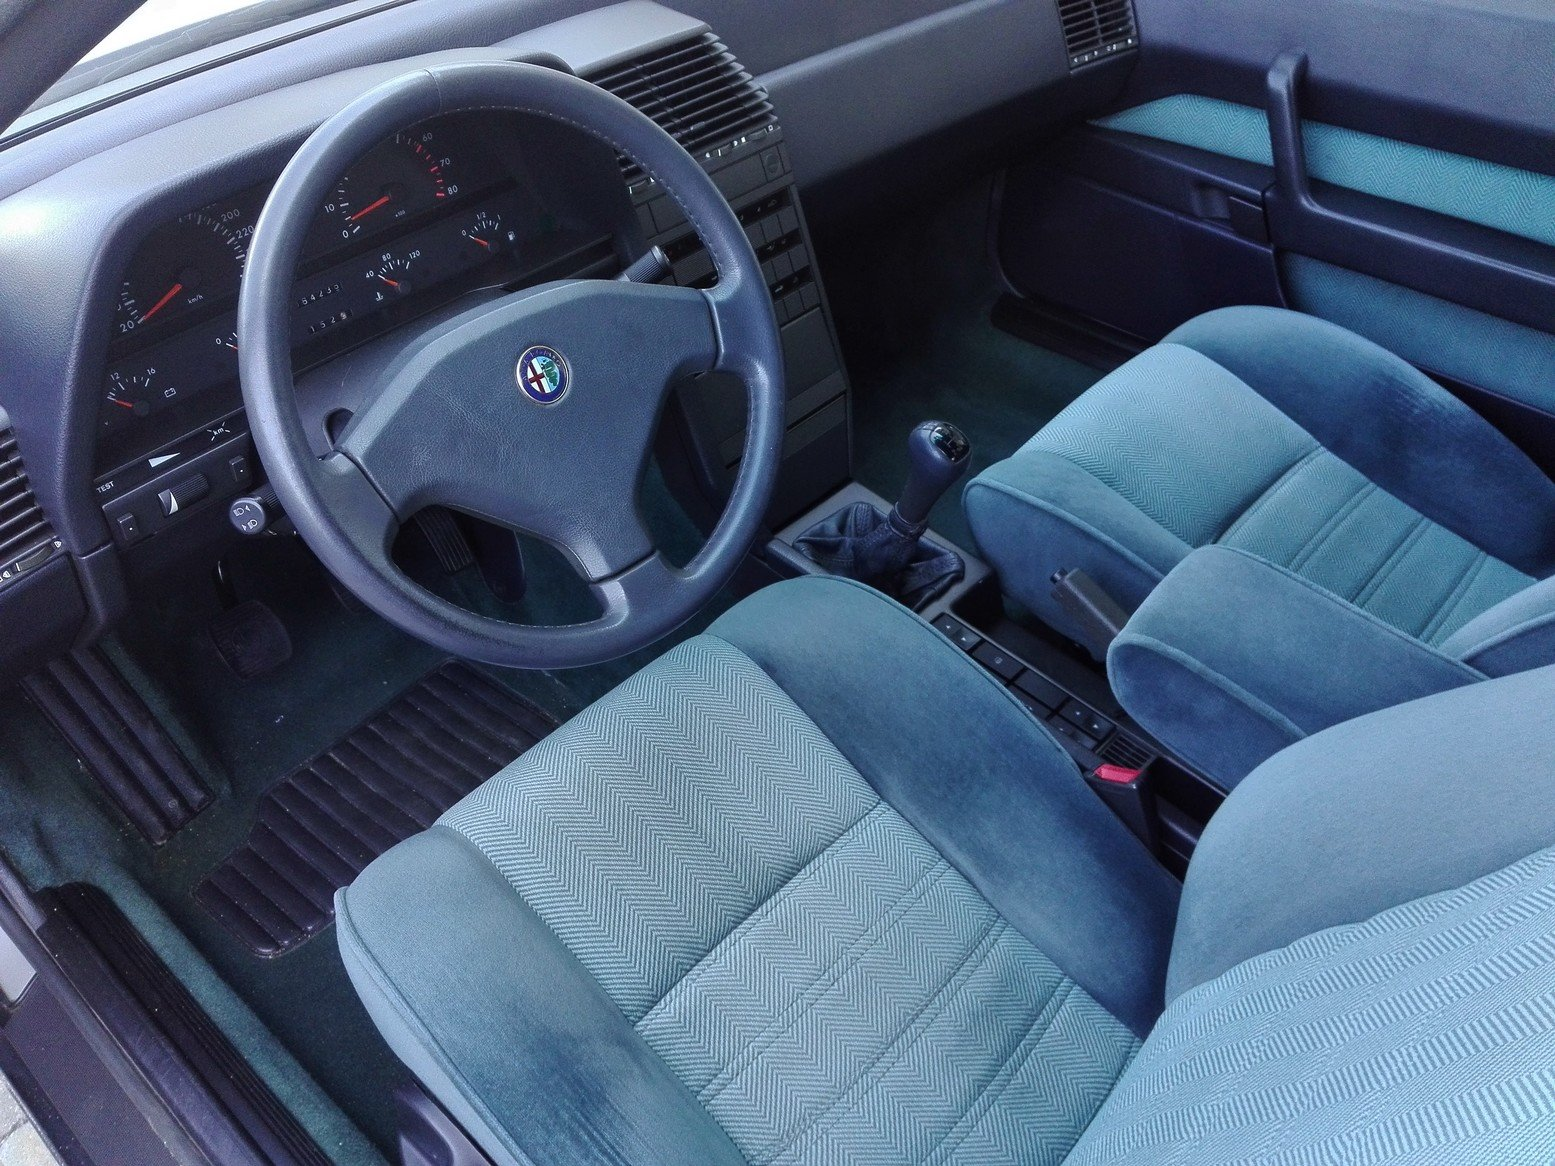 1988 As new alfa 164 3.0 V6 with 64 k km! For Sale (picture 4 of 6)